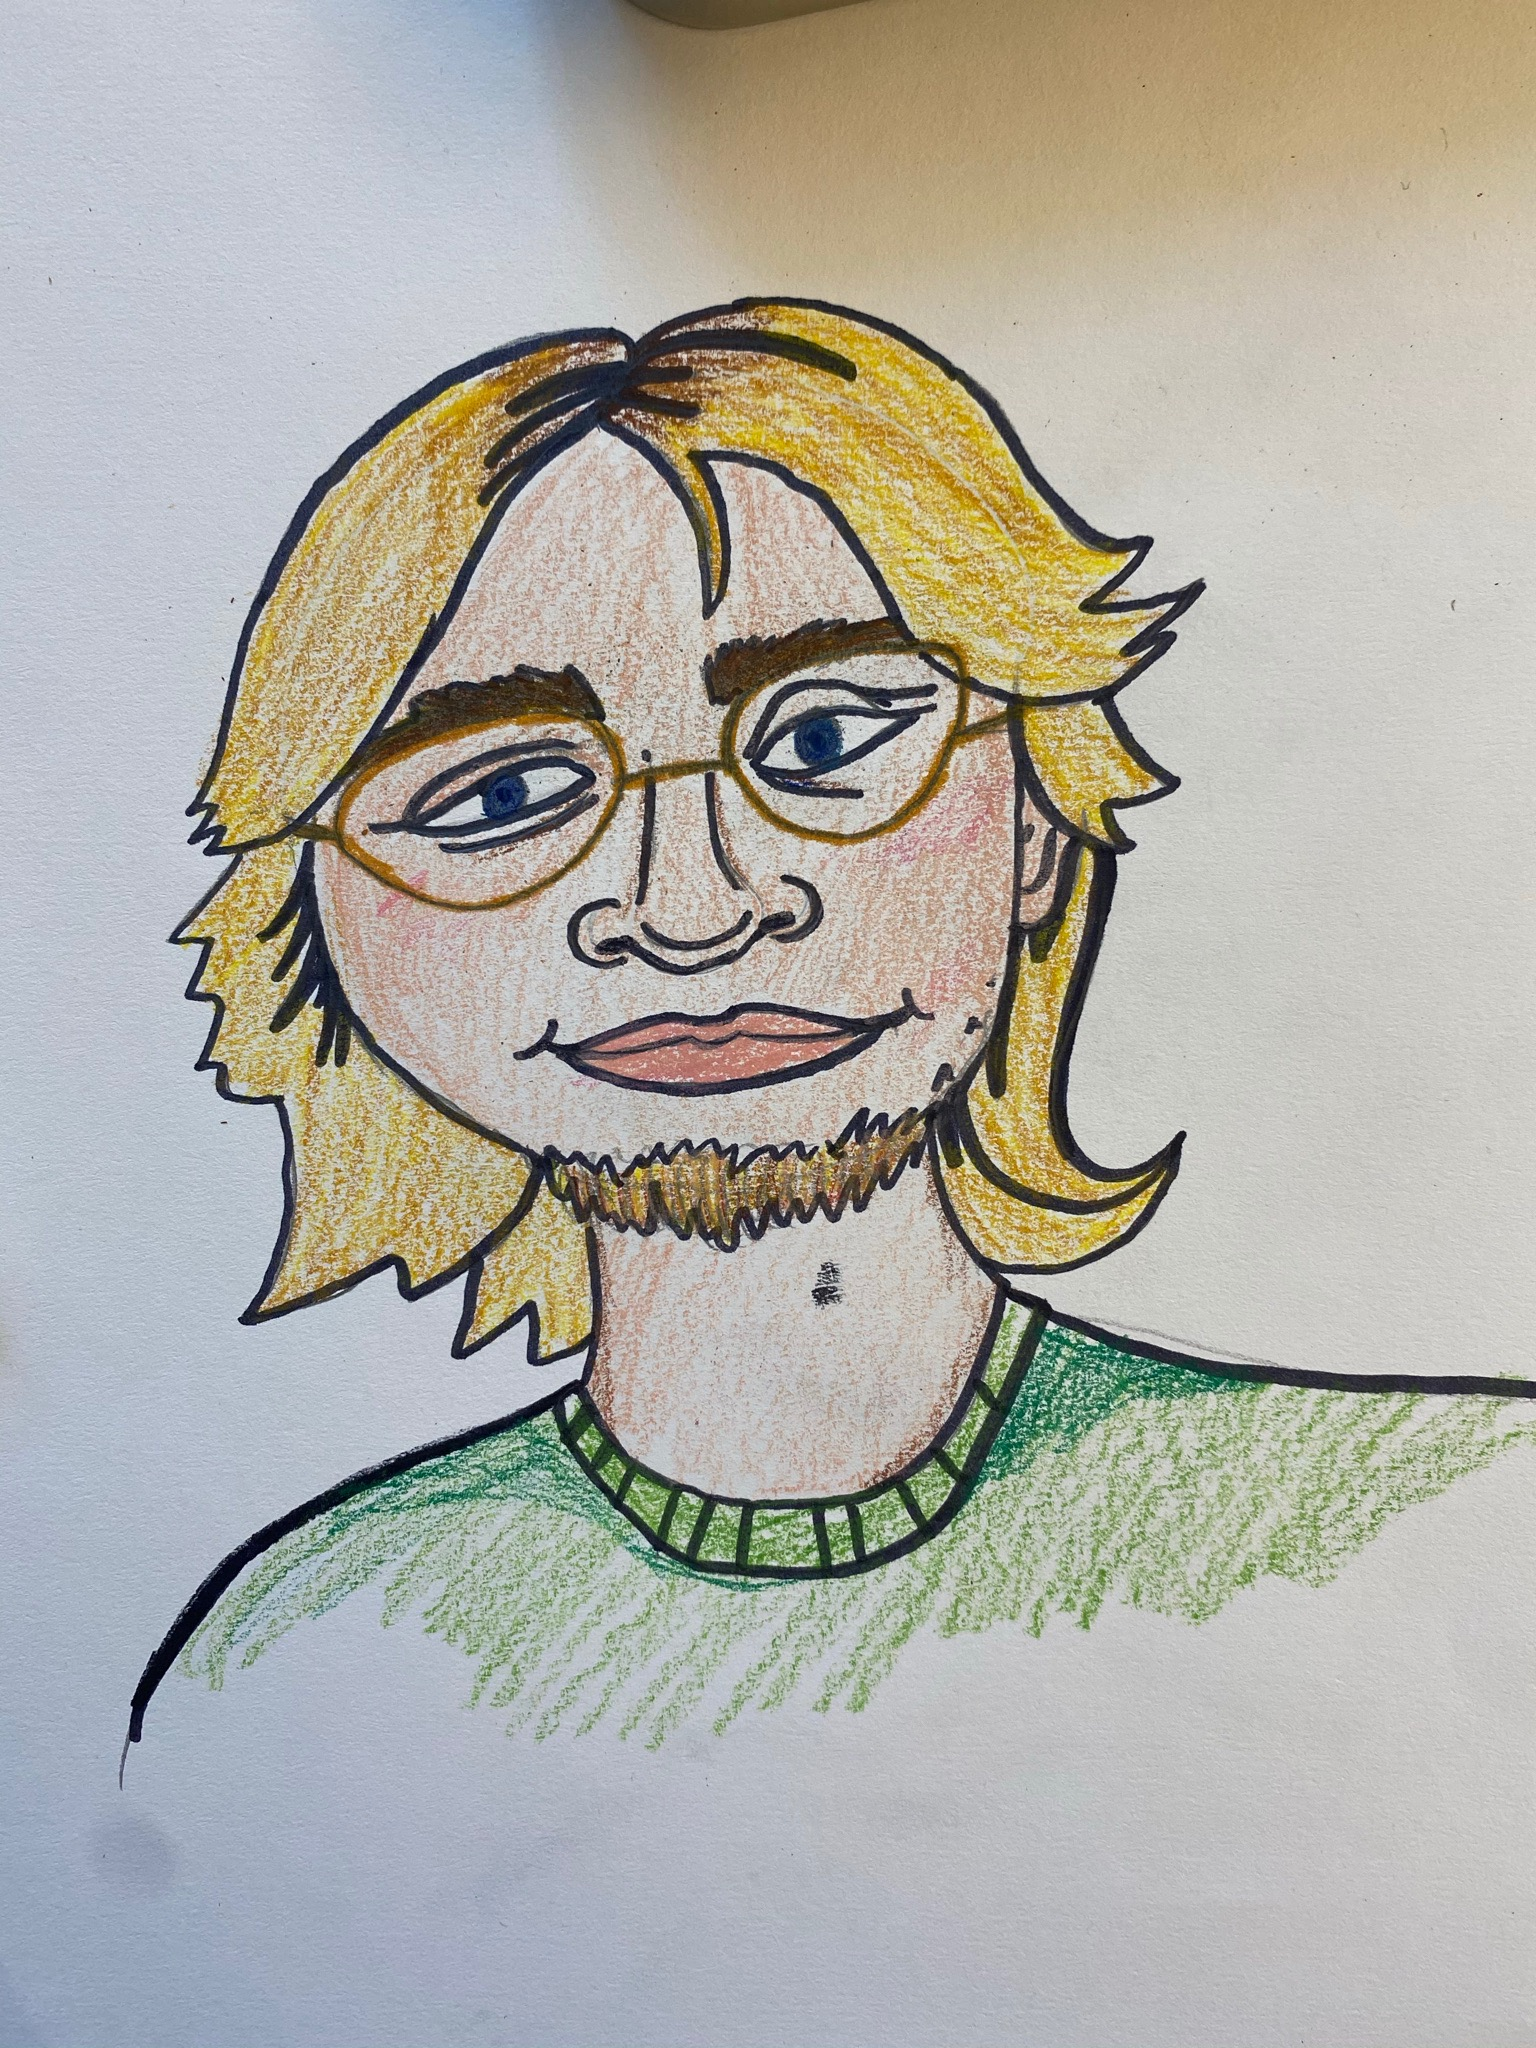 A drawing of the author, who has long blonde hair, glasses, and a beard. Photo courtesy of the author.